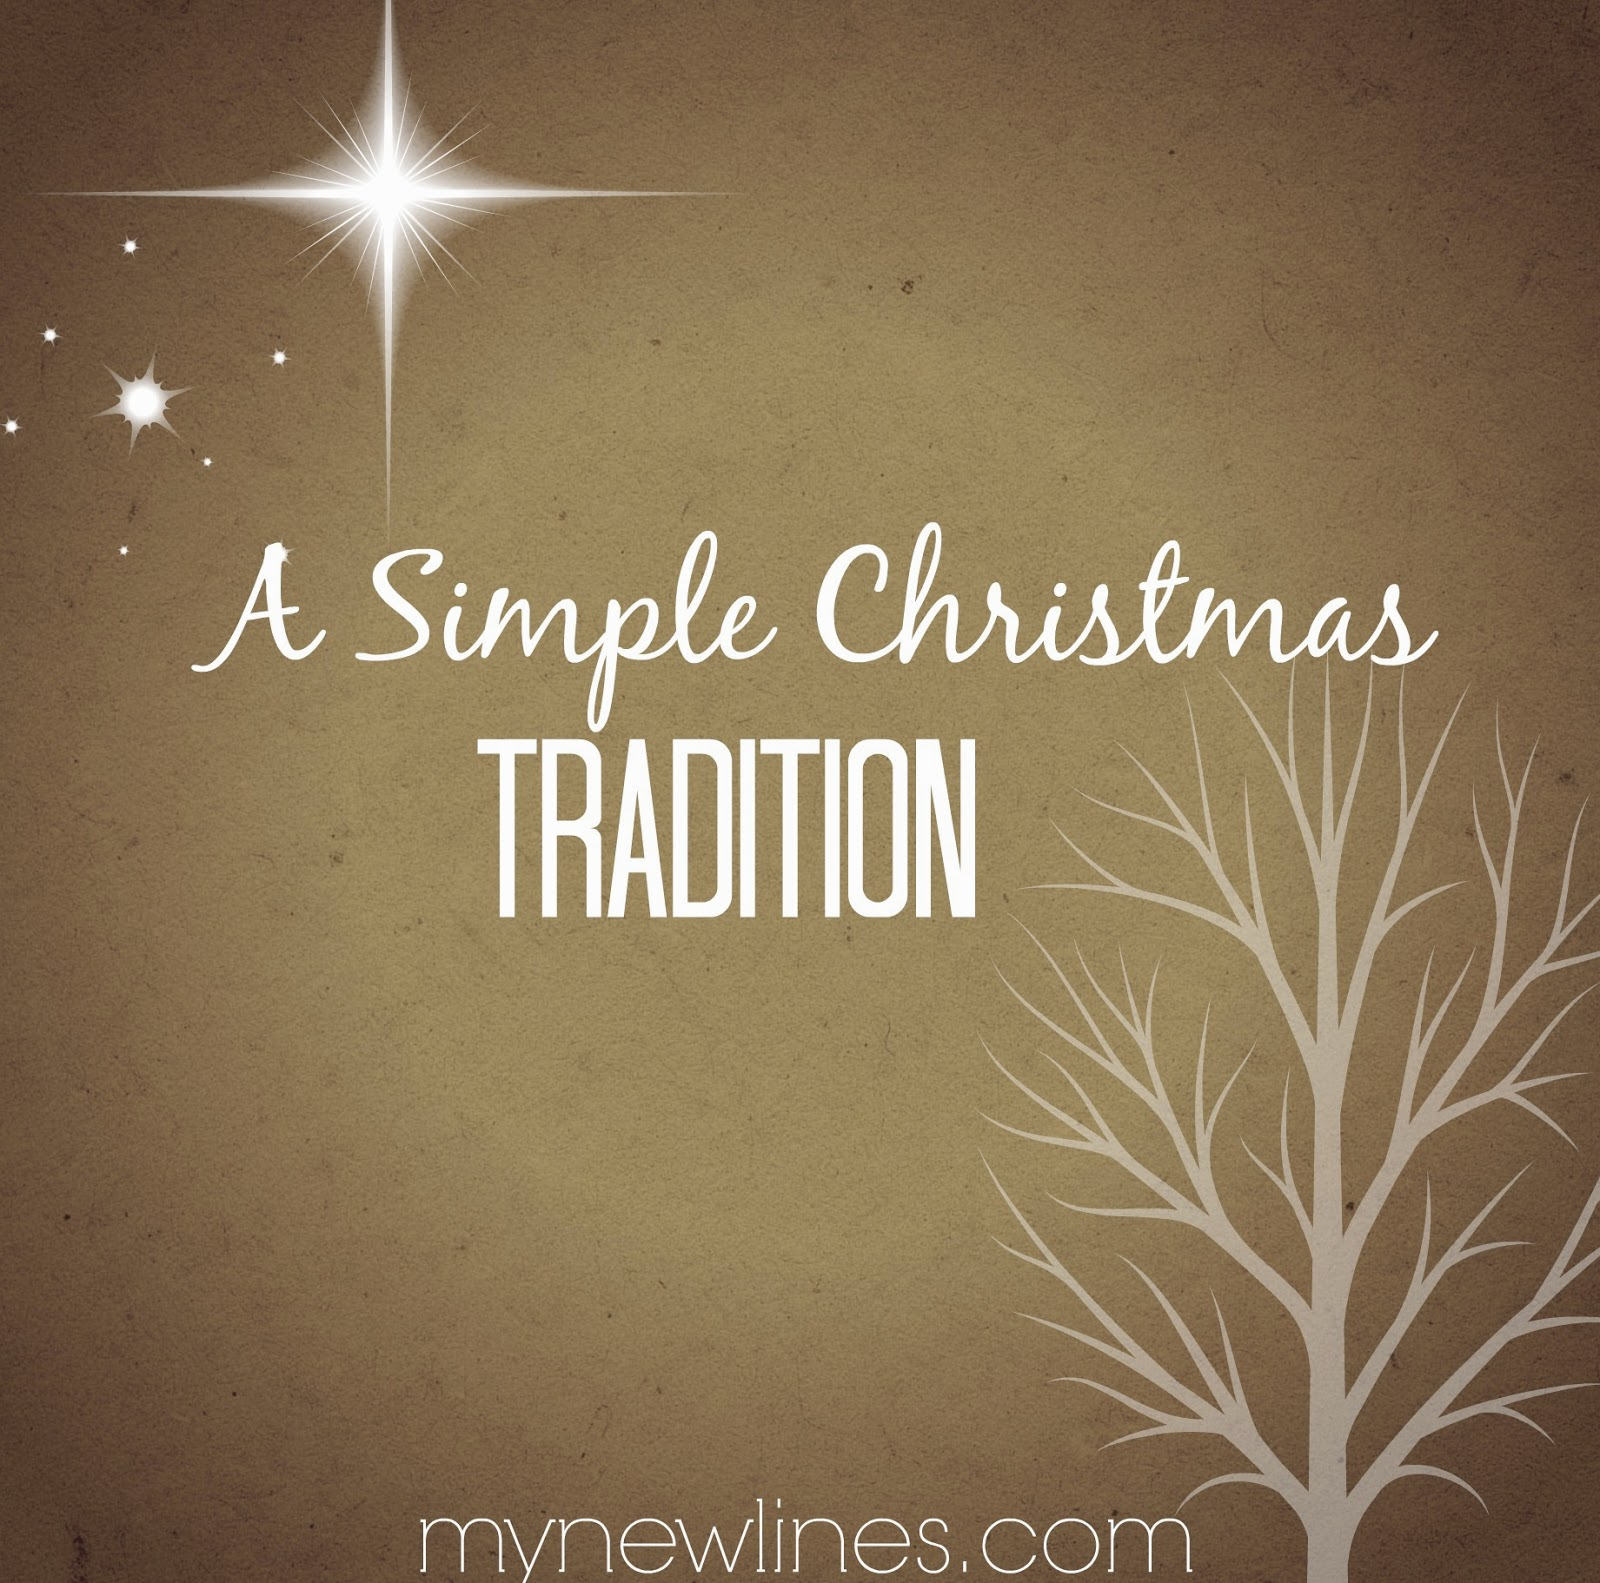 My New Lines: Keeping Christmas Gifts Meaningful and Simple